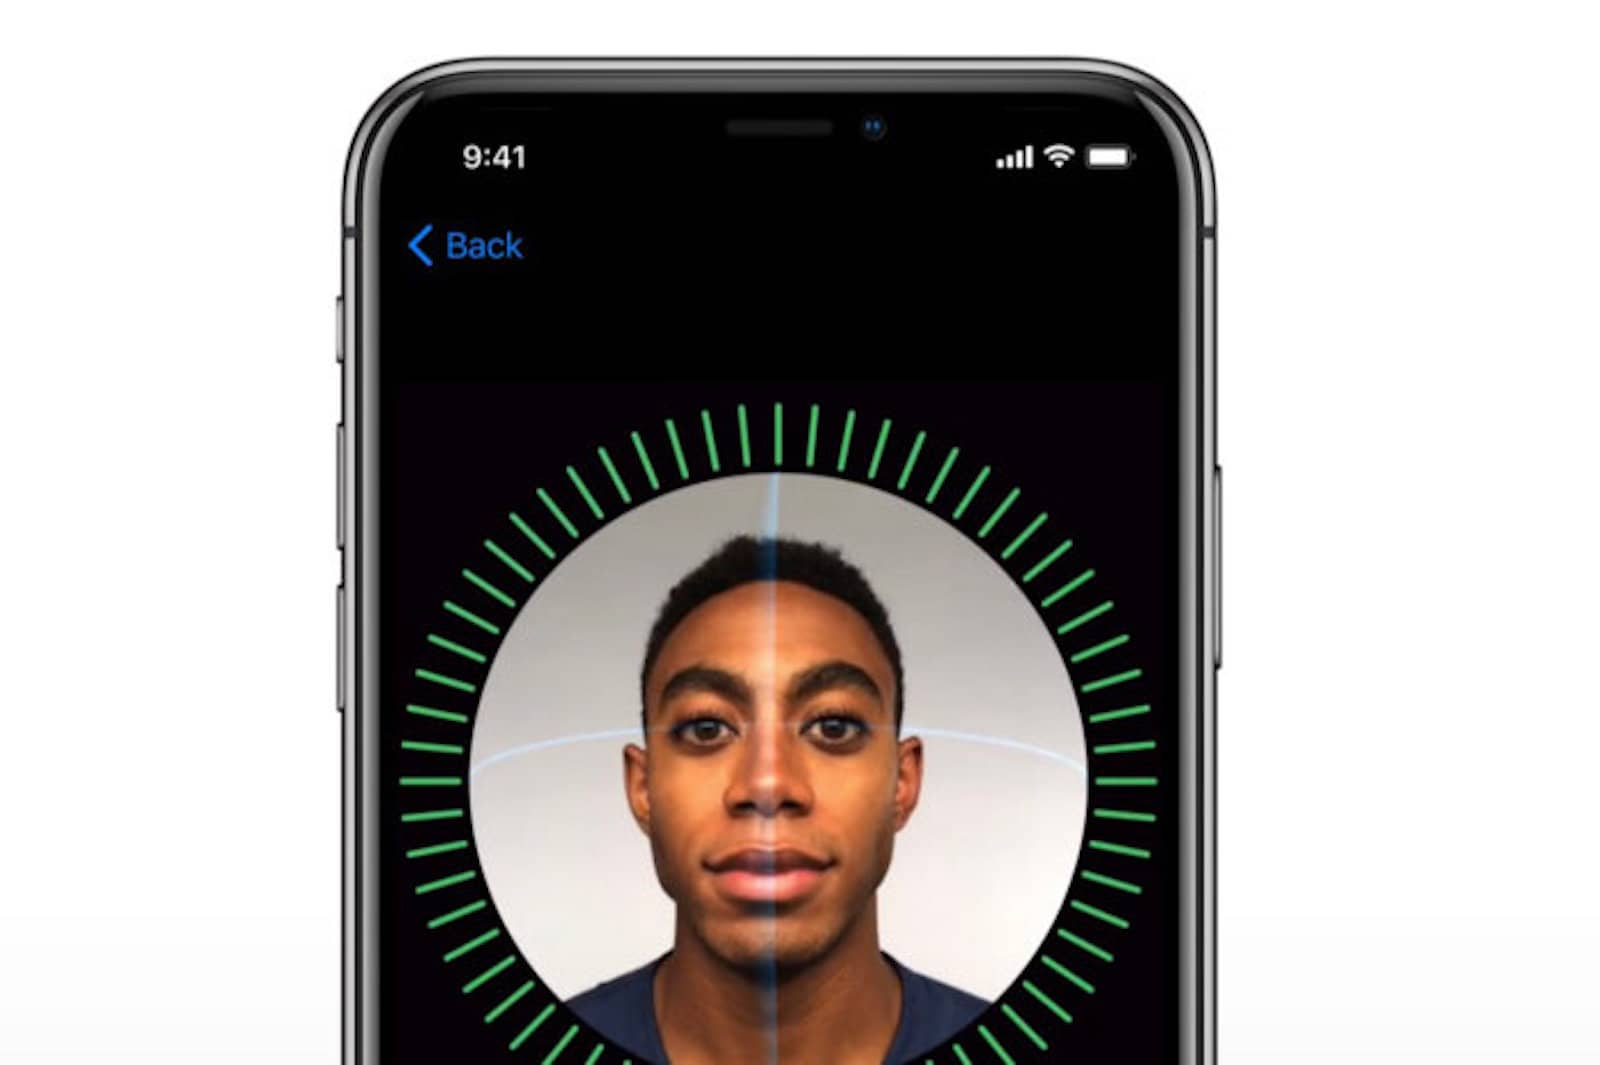 What Face ID security looks like on the iPhone X.